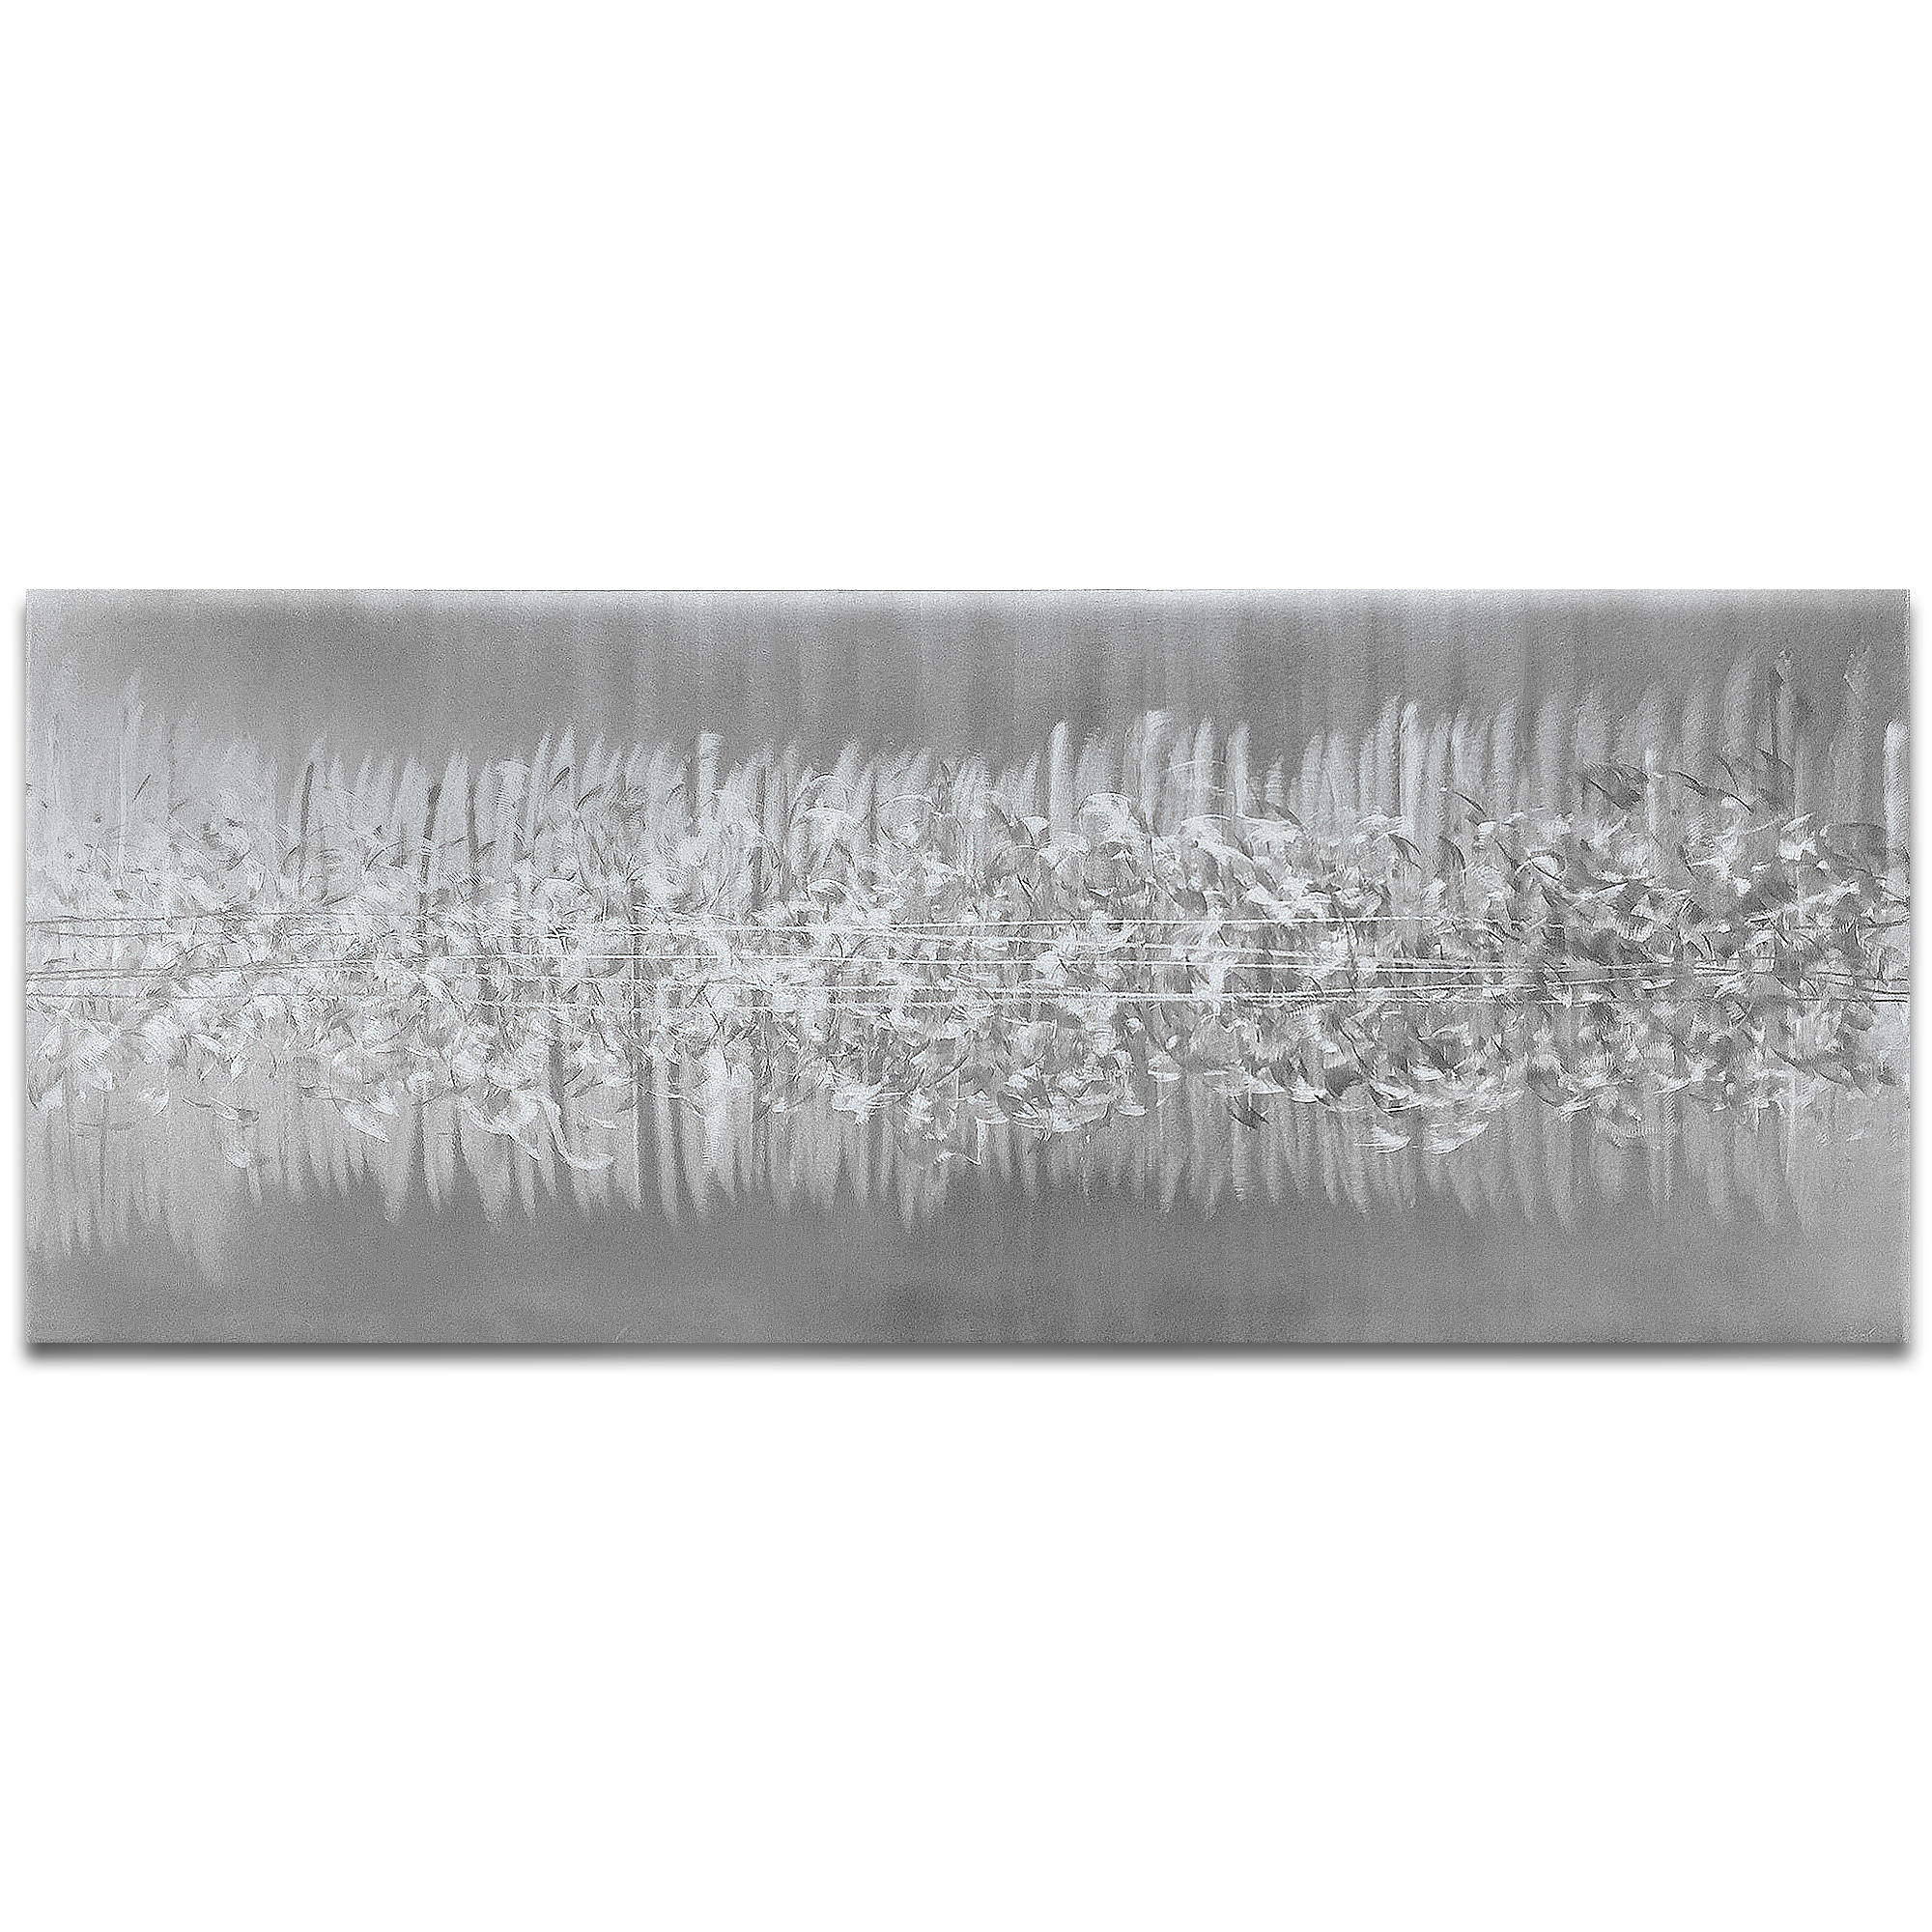 Helena Martin 'Static Silver' 60in x 24in Original Abstract Art on Ground Metal